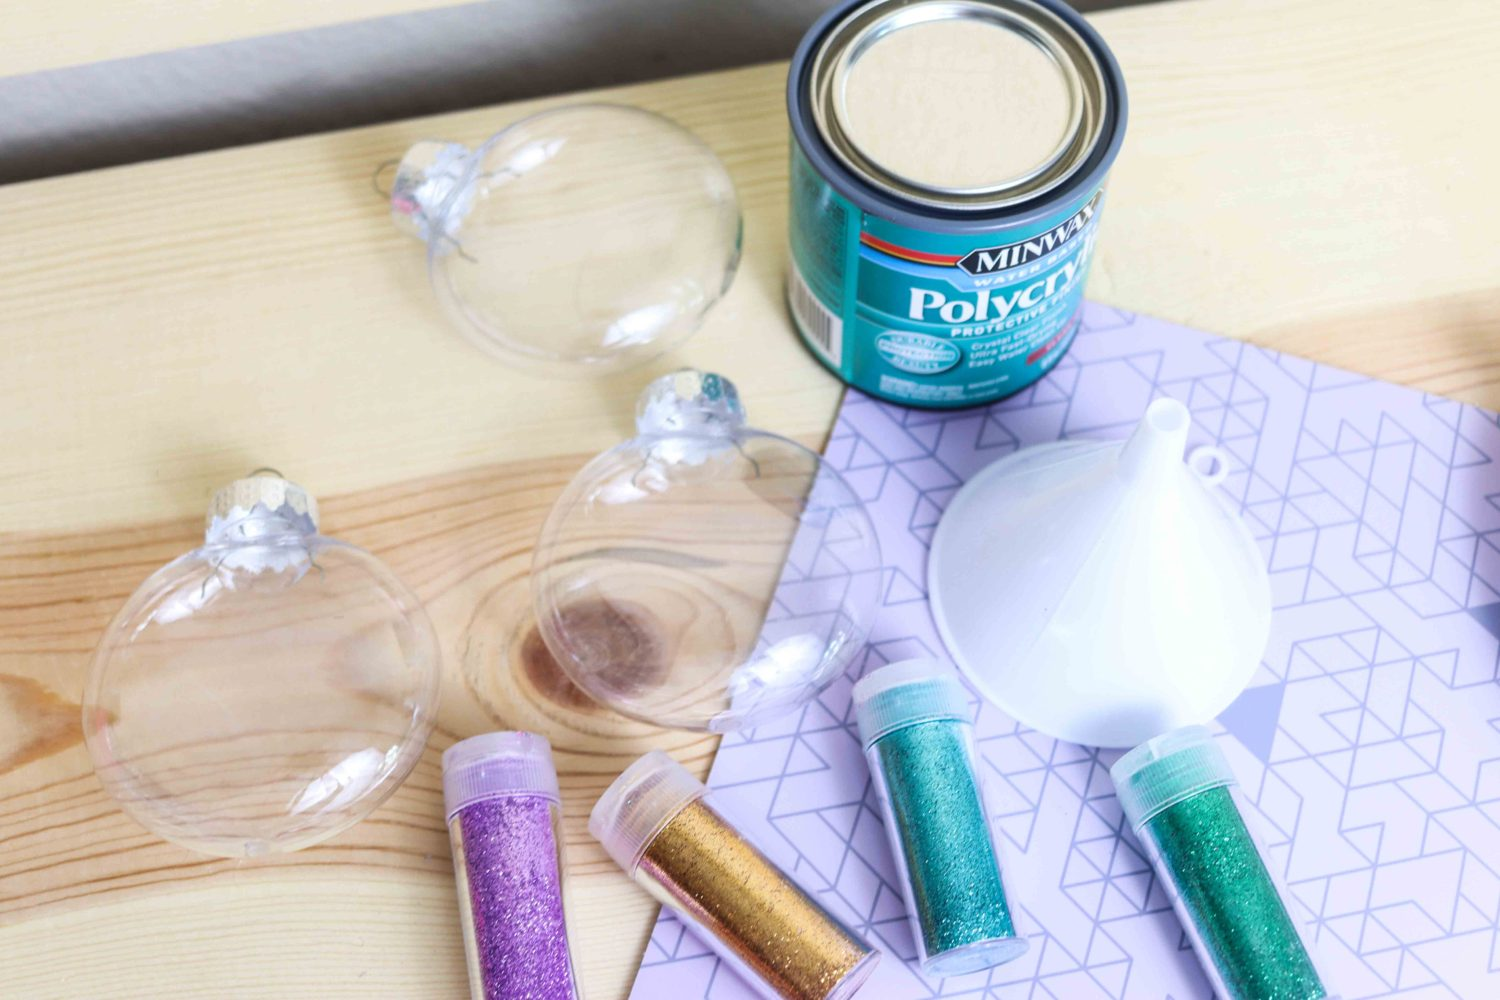 Materials needed to make glitter ornaments